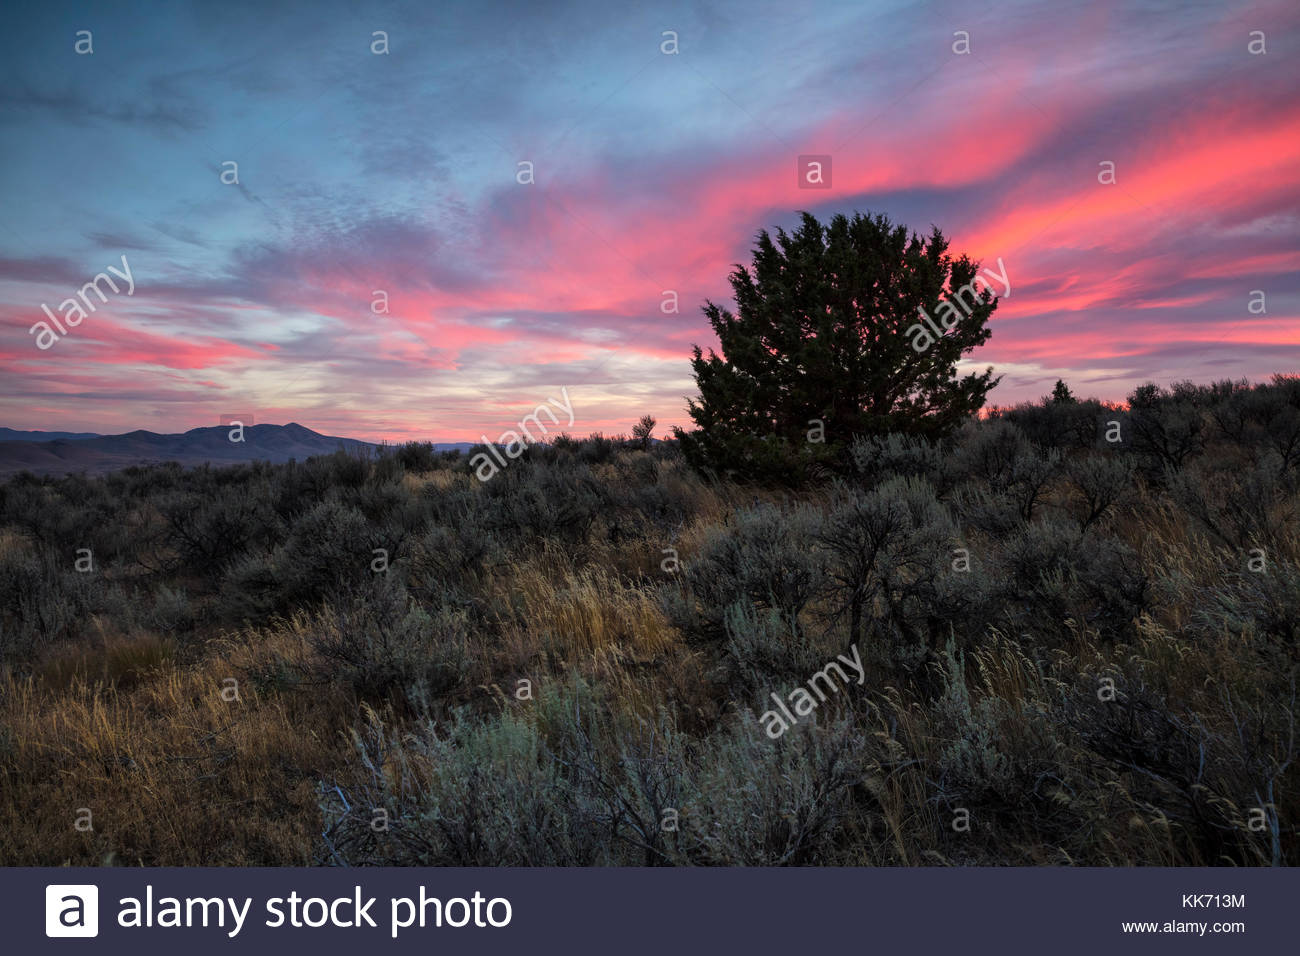 A band of altostratus clouds reflect the red color of sunset over the Mormon Basin in Malheur County, Oregon. Cow - Stock Image